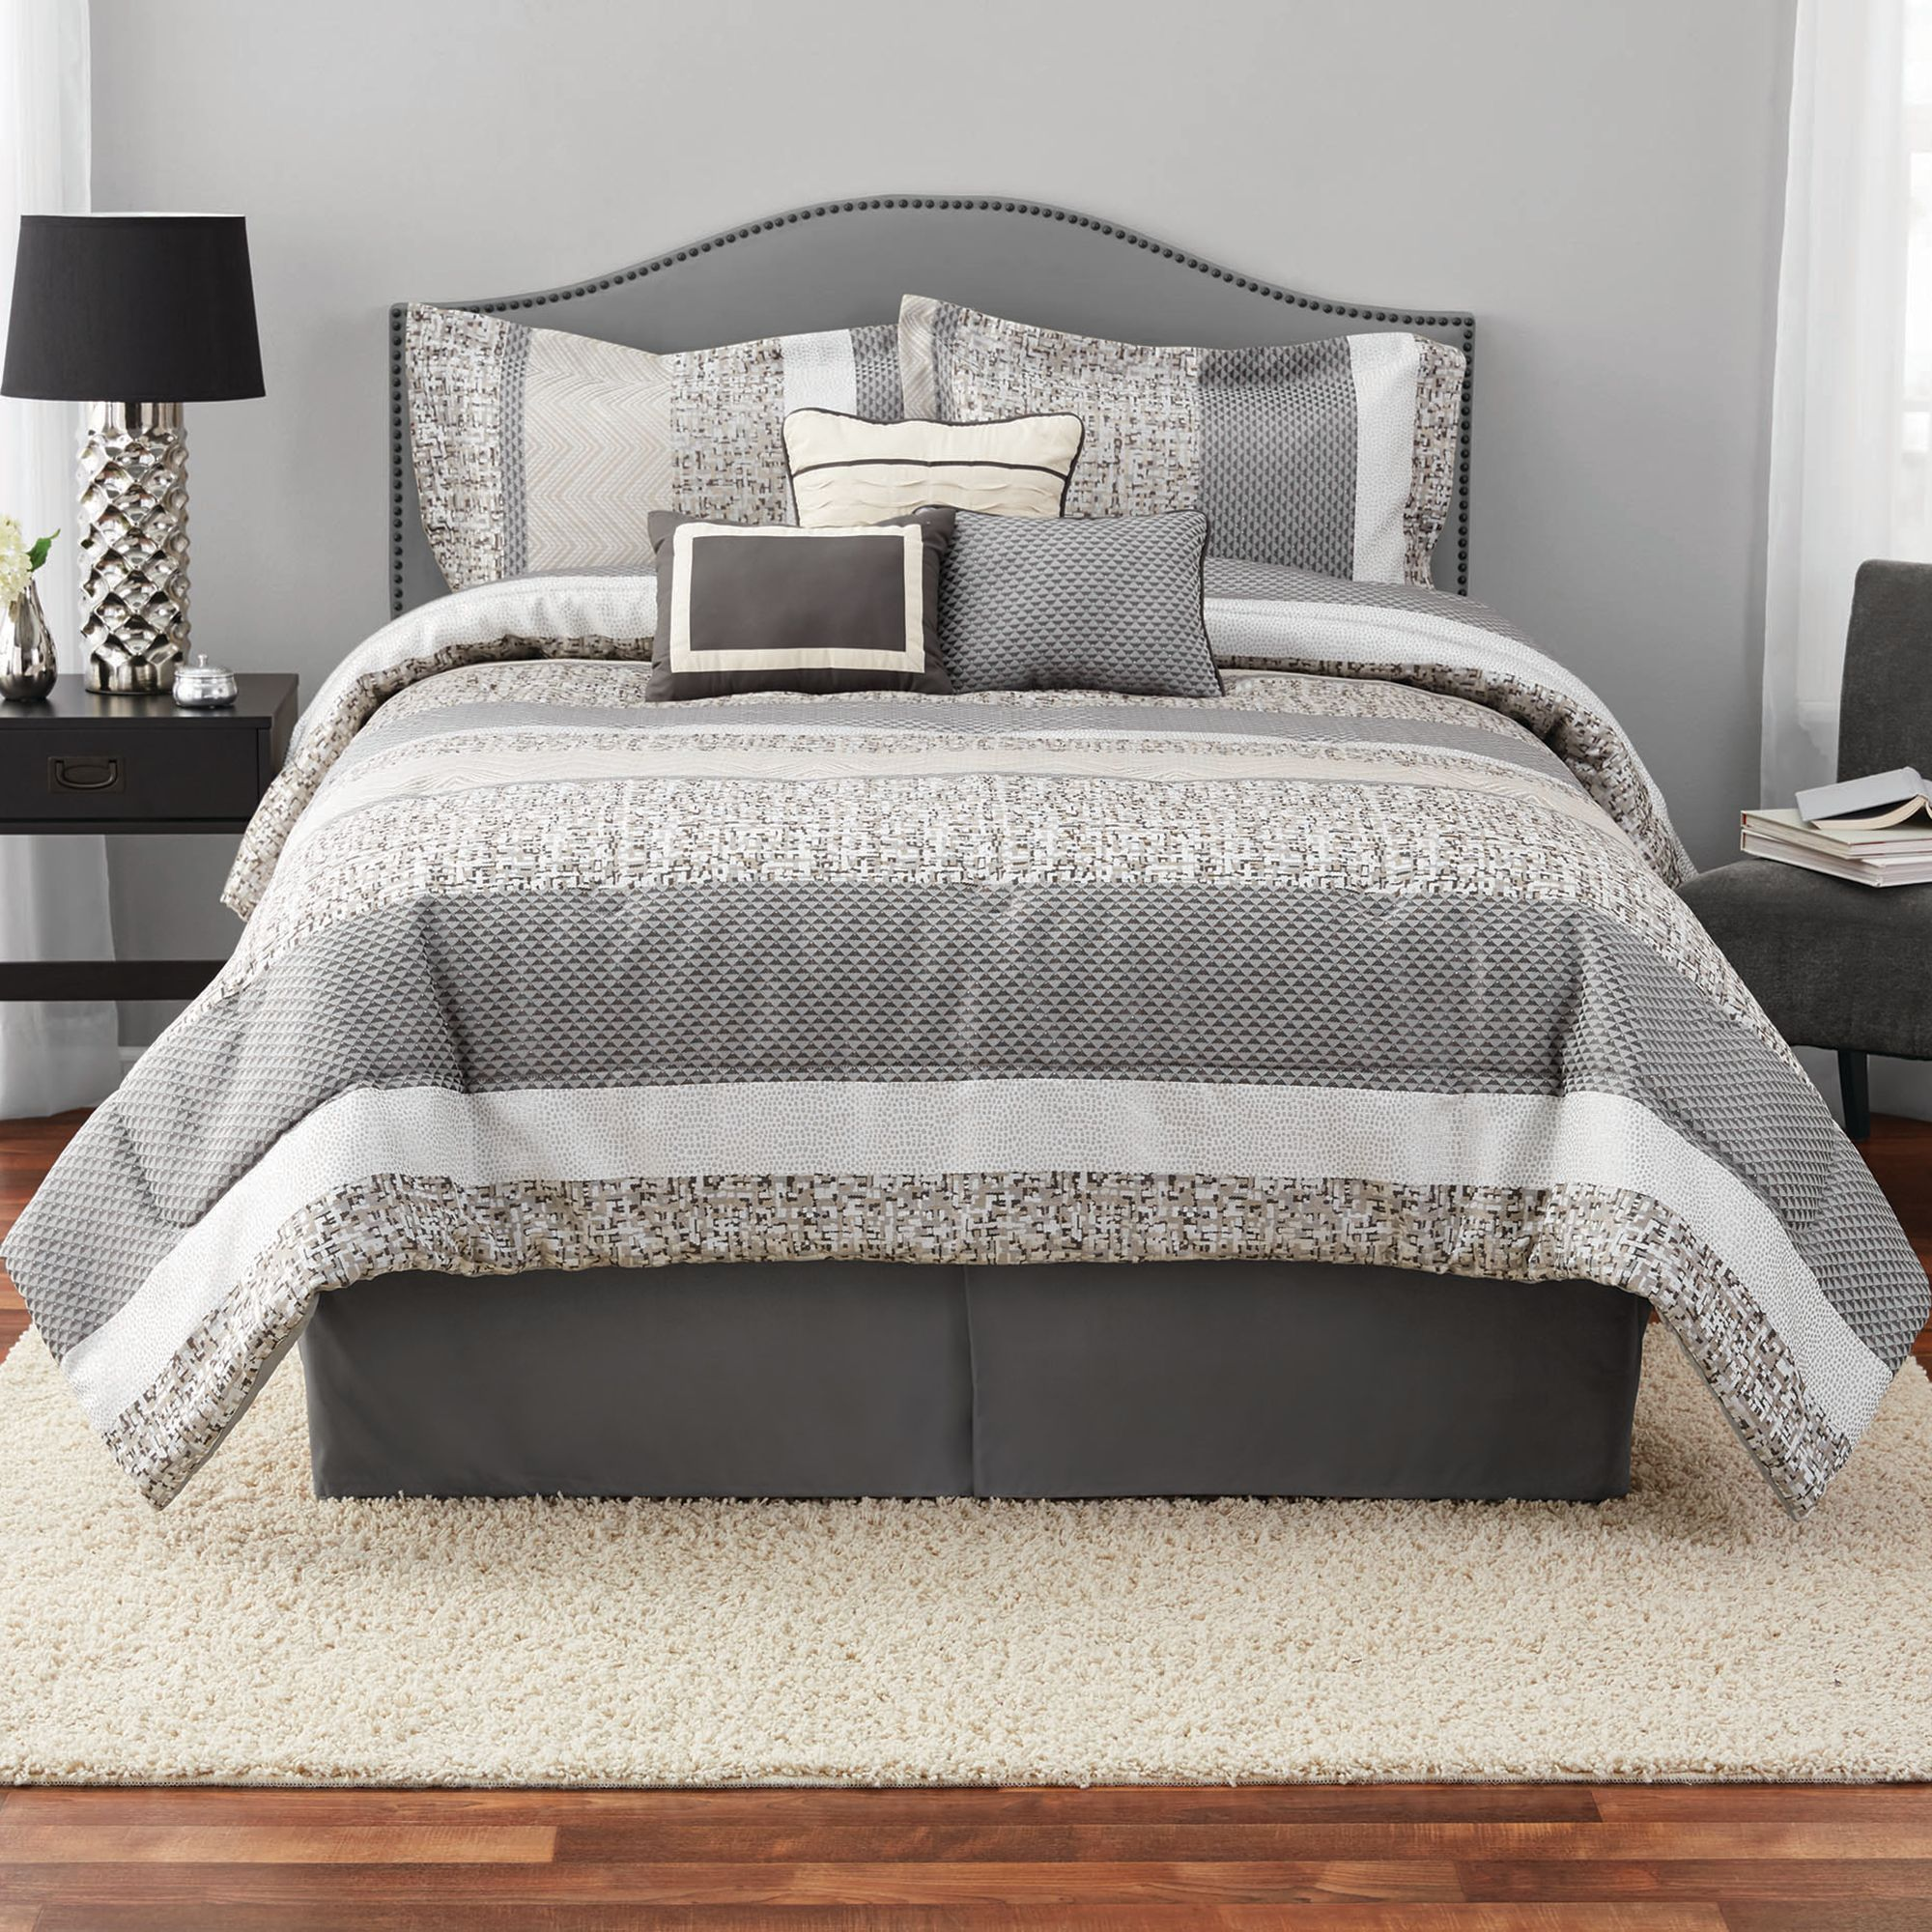 Mainstays Full or Queen Silver Stripe Comforter Set, 7 Piece